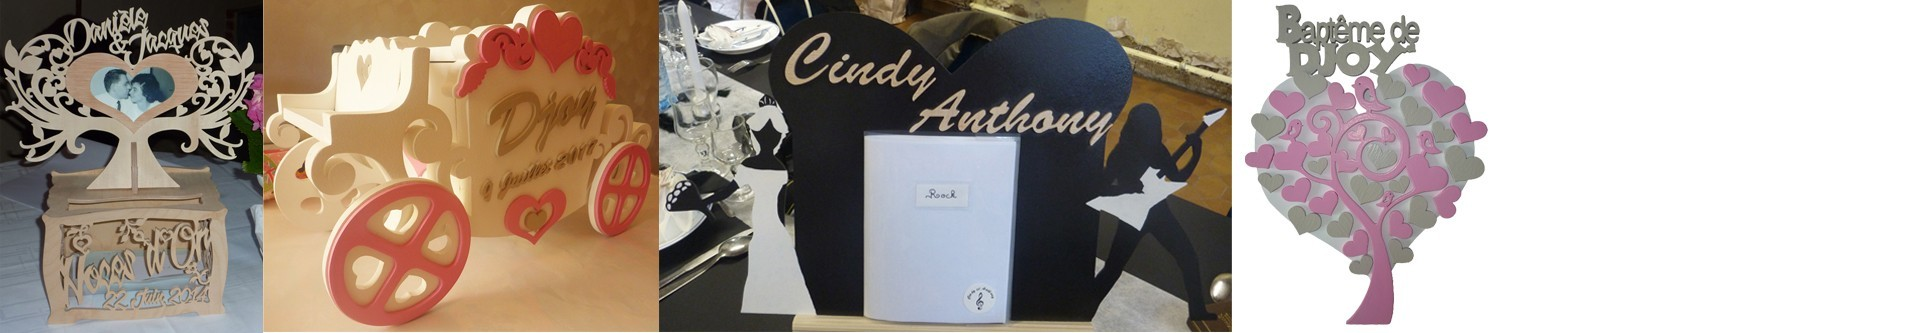 Personalized Decoration for Party